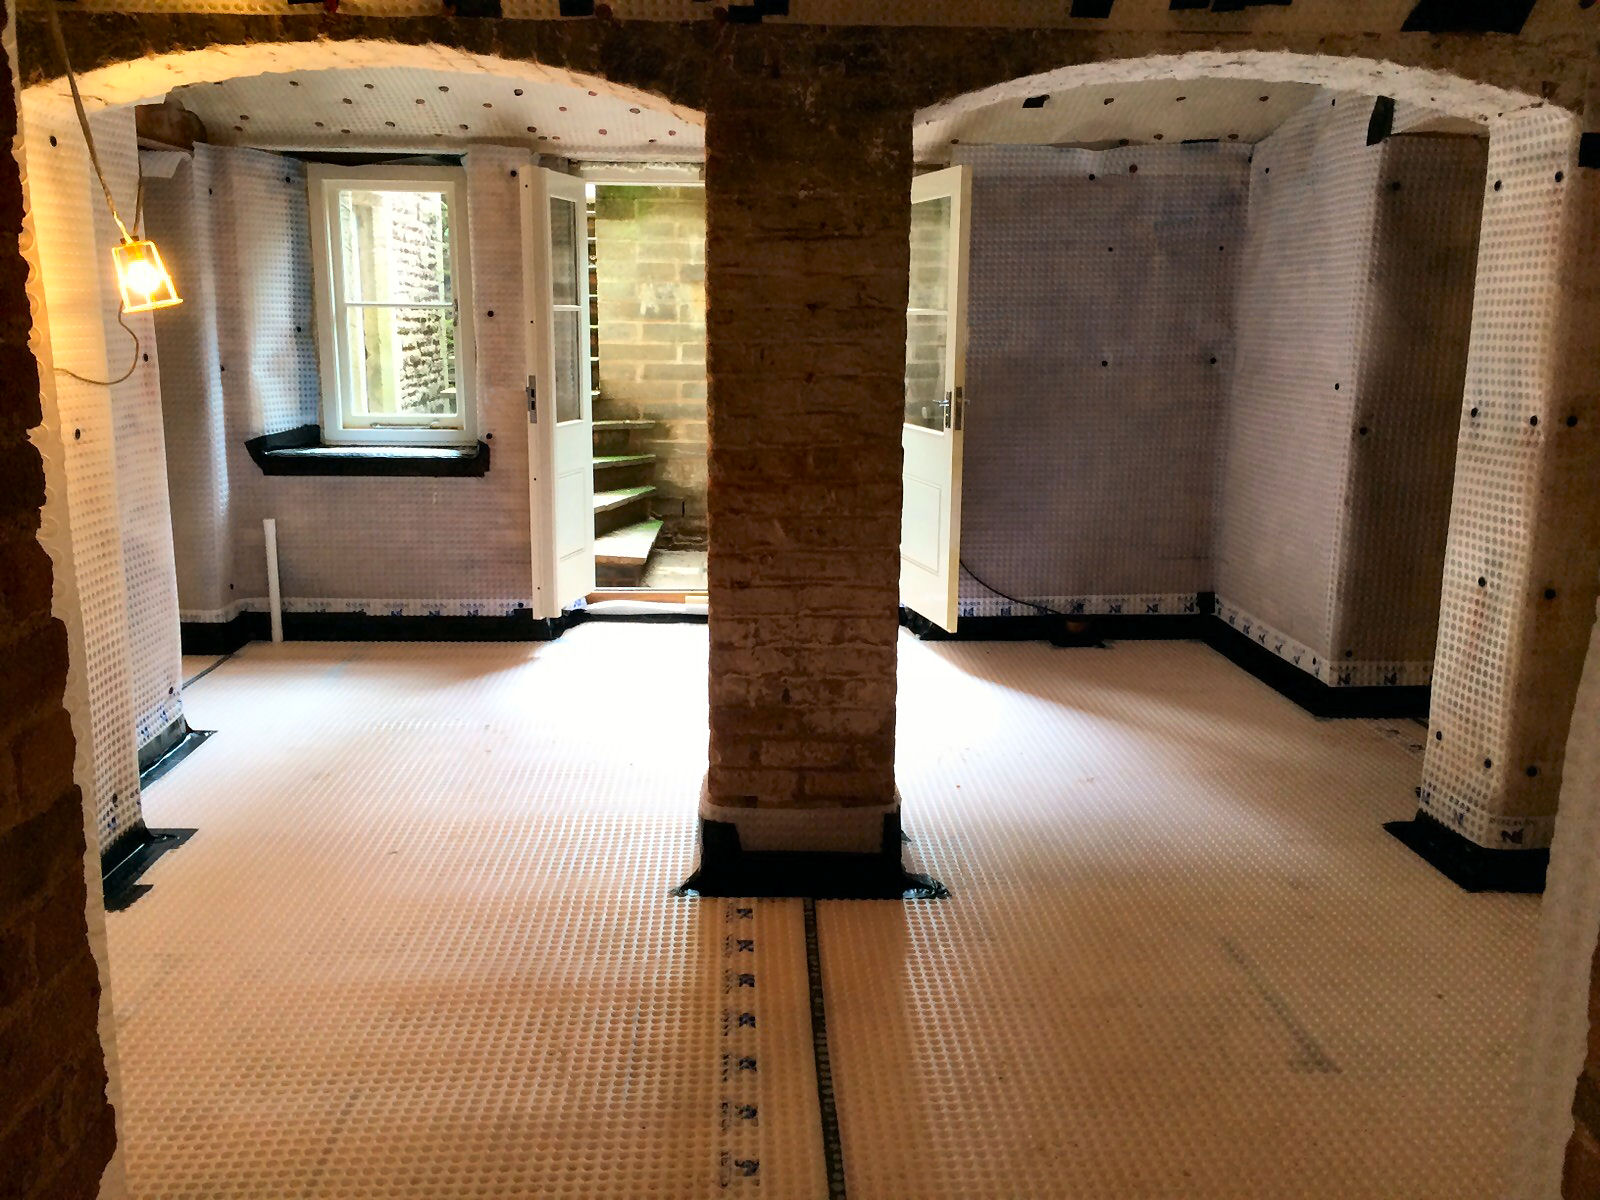 Type C (Drained) Waterproofing Installation Underway using Cavity Drain Membrane to vaulted Basement Conversion.